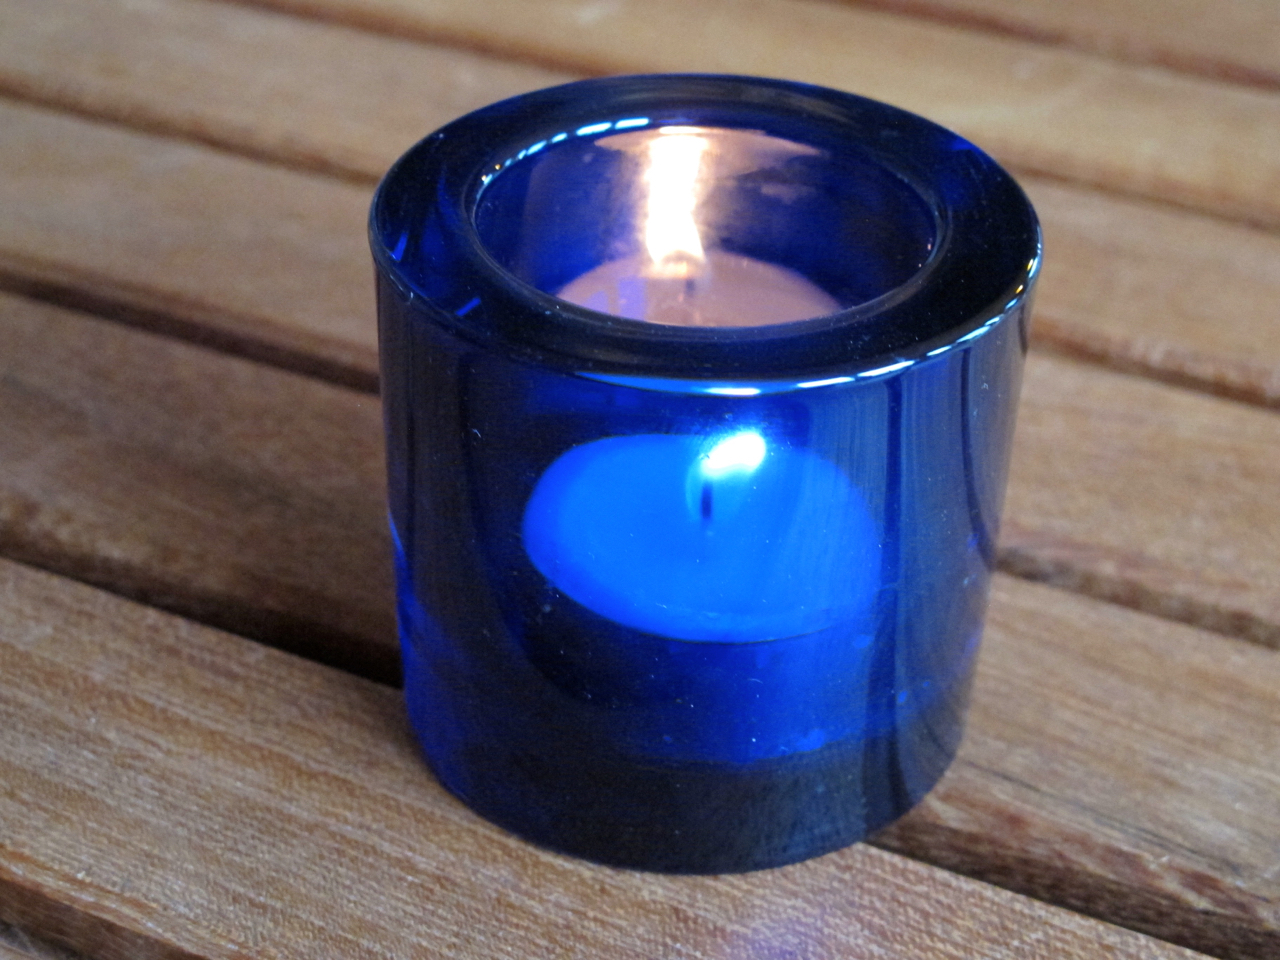 My special cobalt blue solstice candle-holder